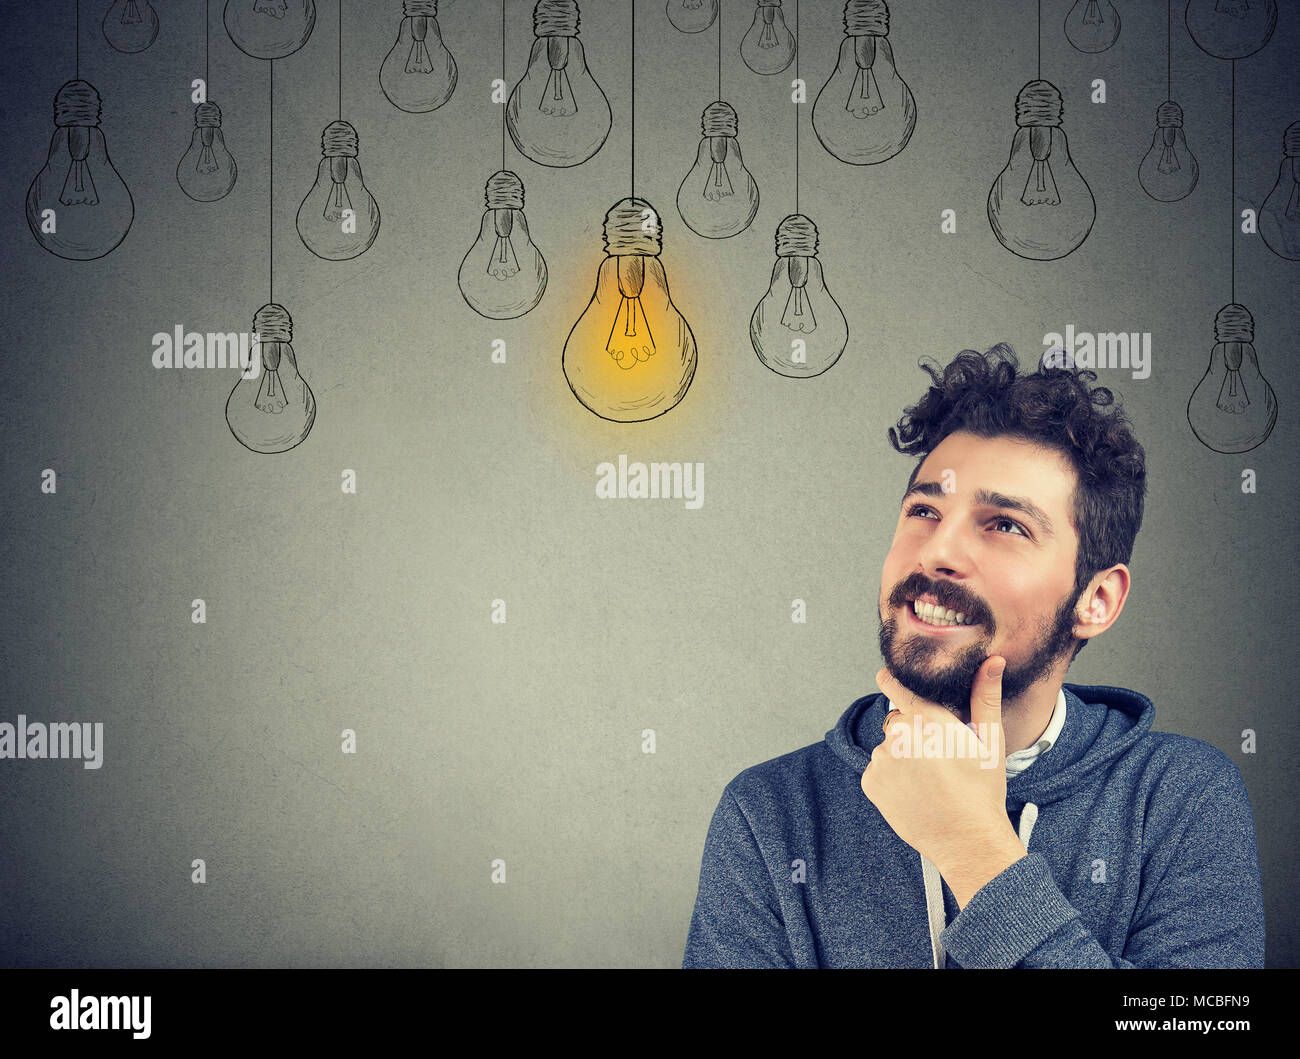 Portrait of a thinking man smiling looking up at light idea bulb above head isolated on gray wall background - Stock Image